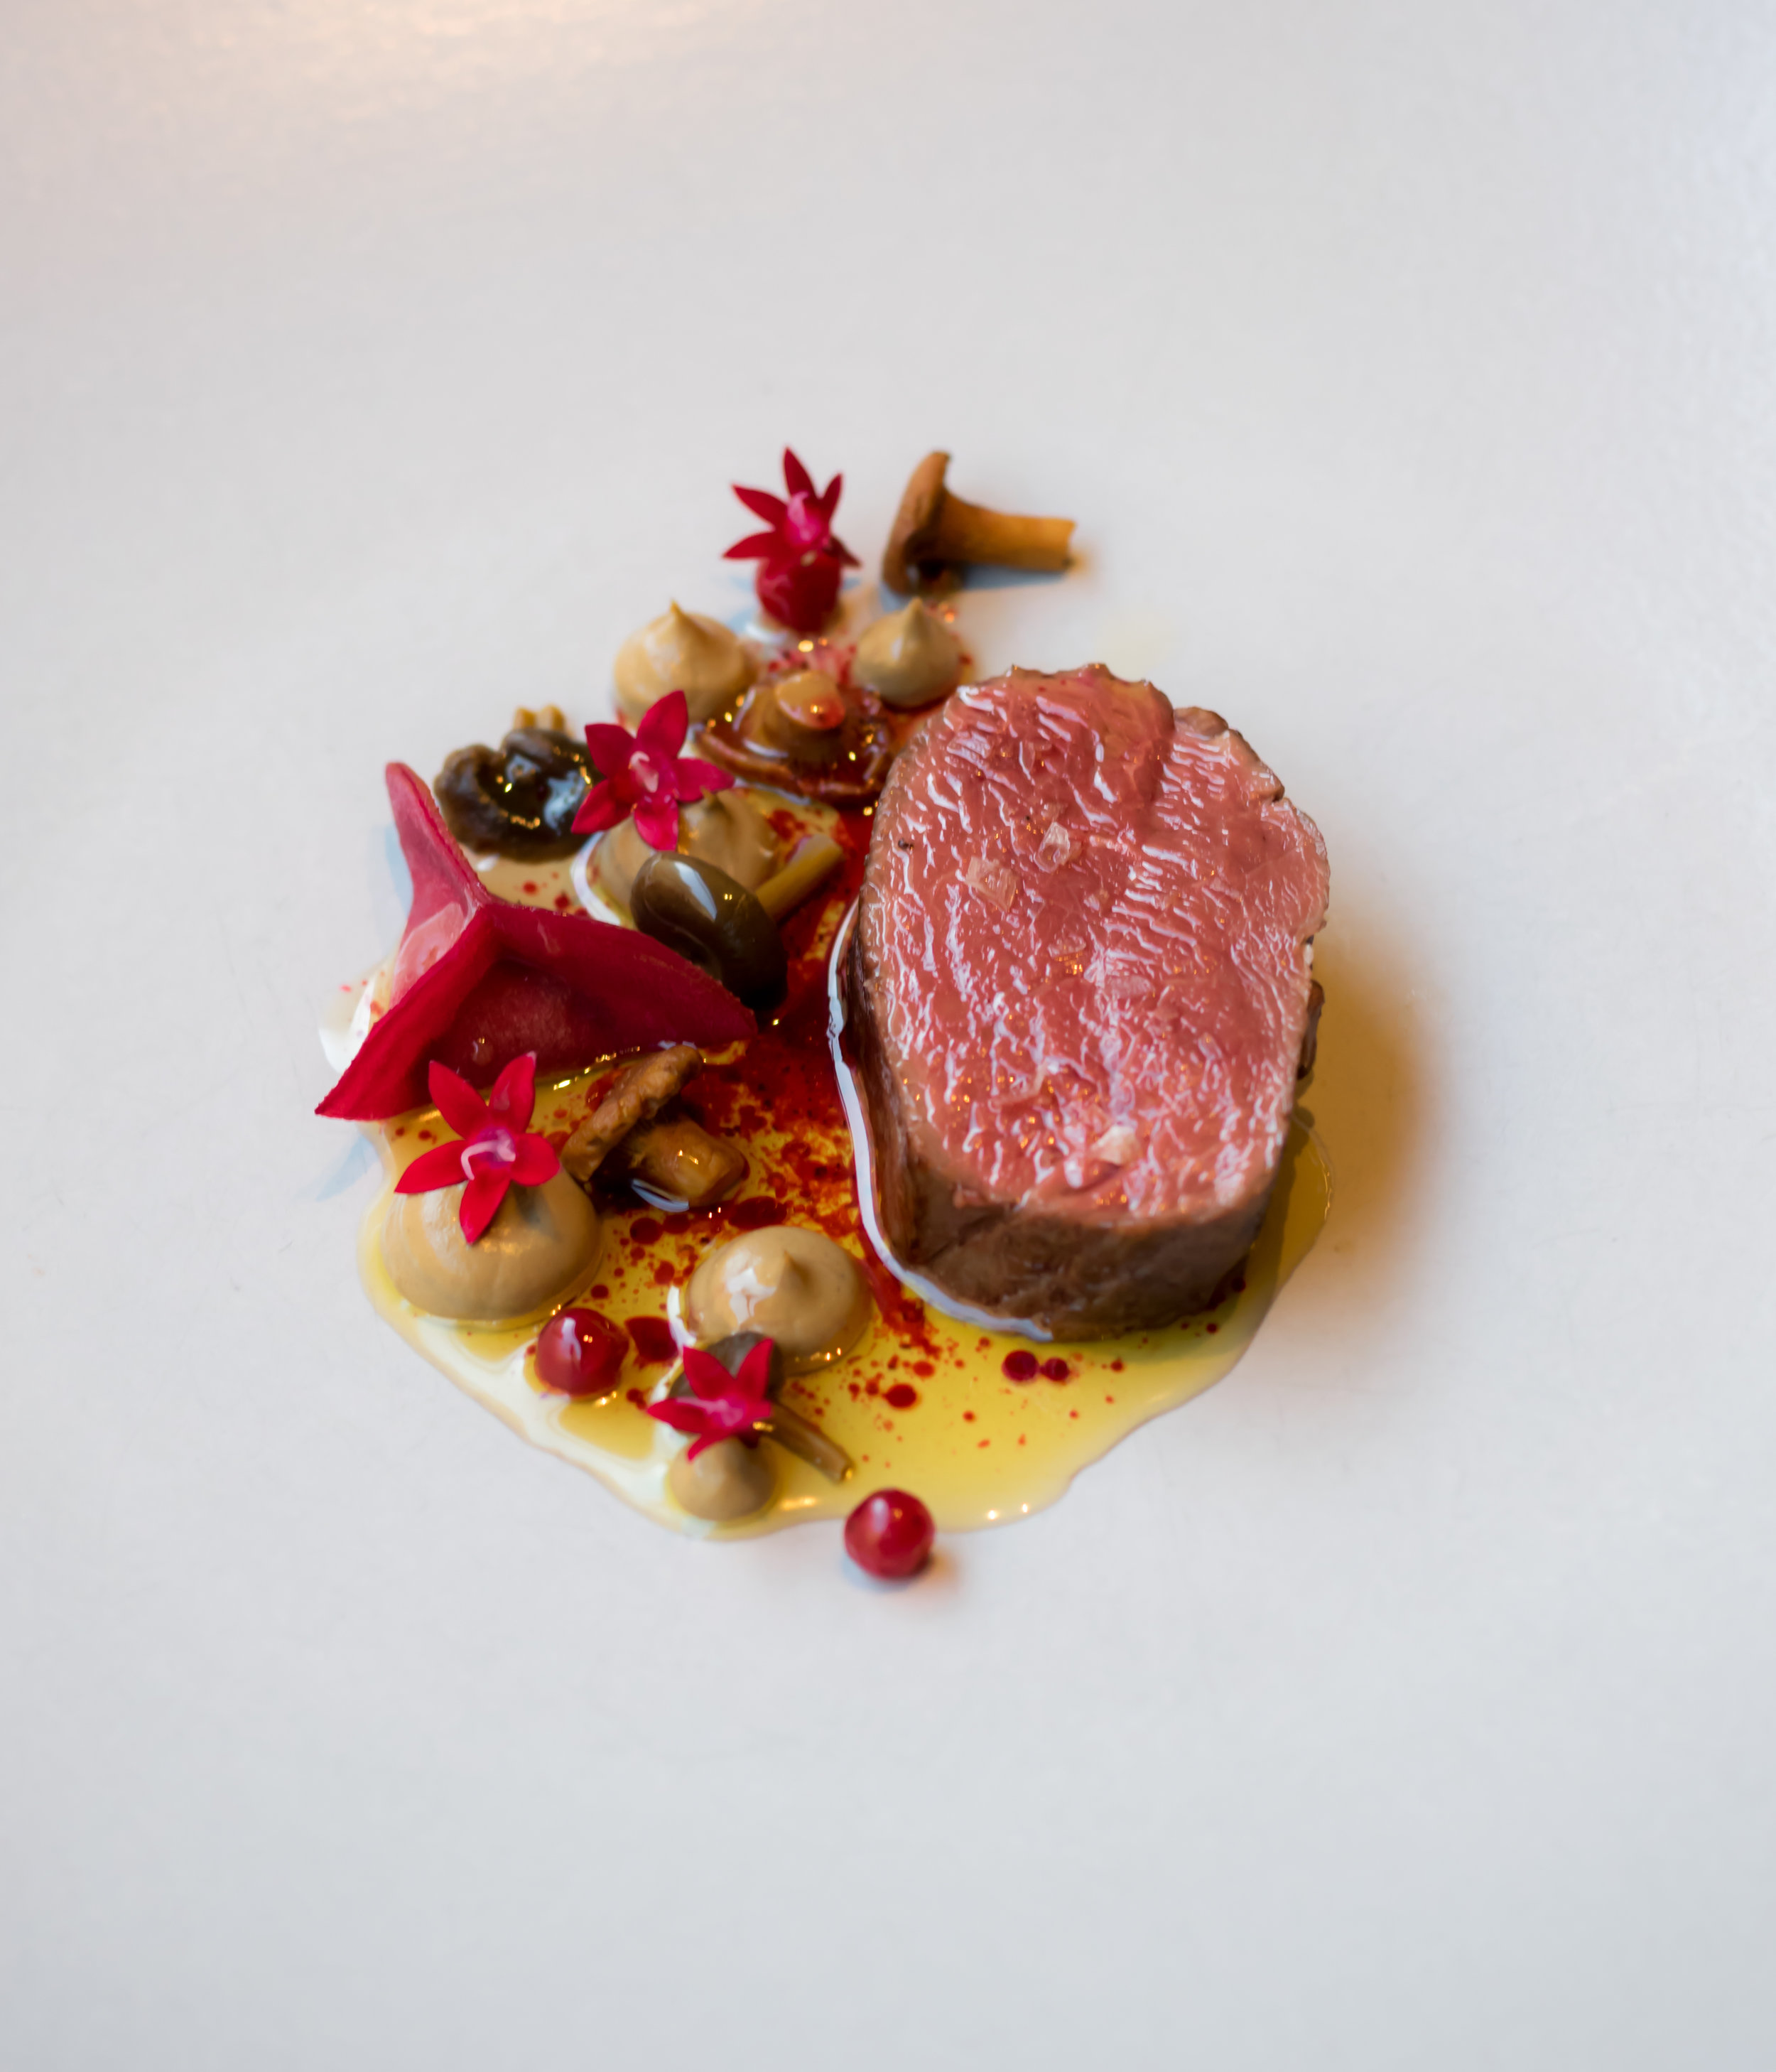 Venison-lingonberries-brownbutter-mushrooms.jpg